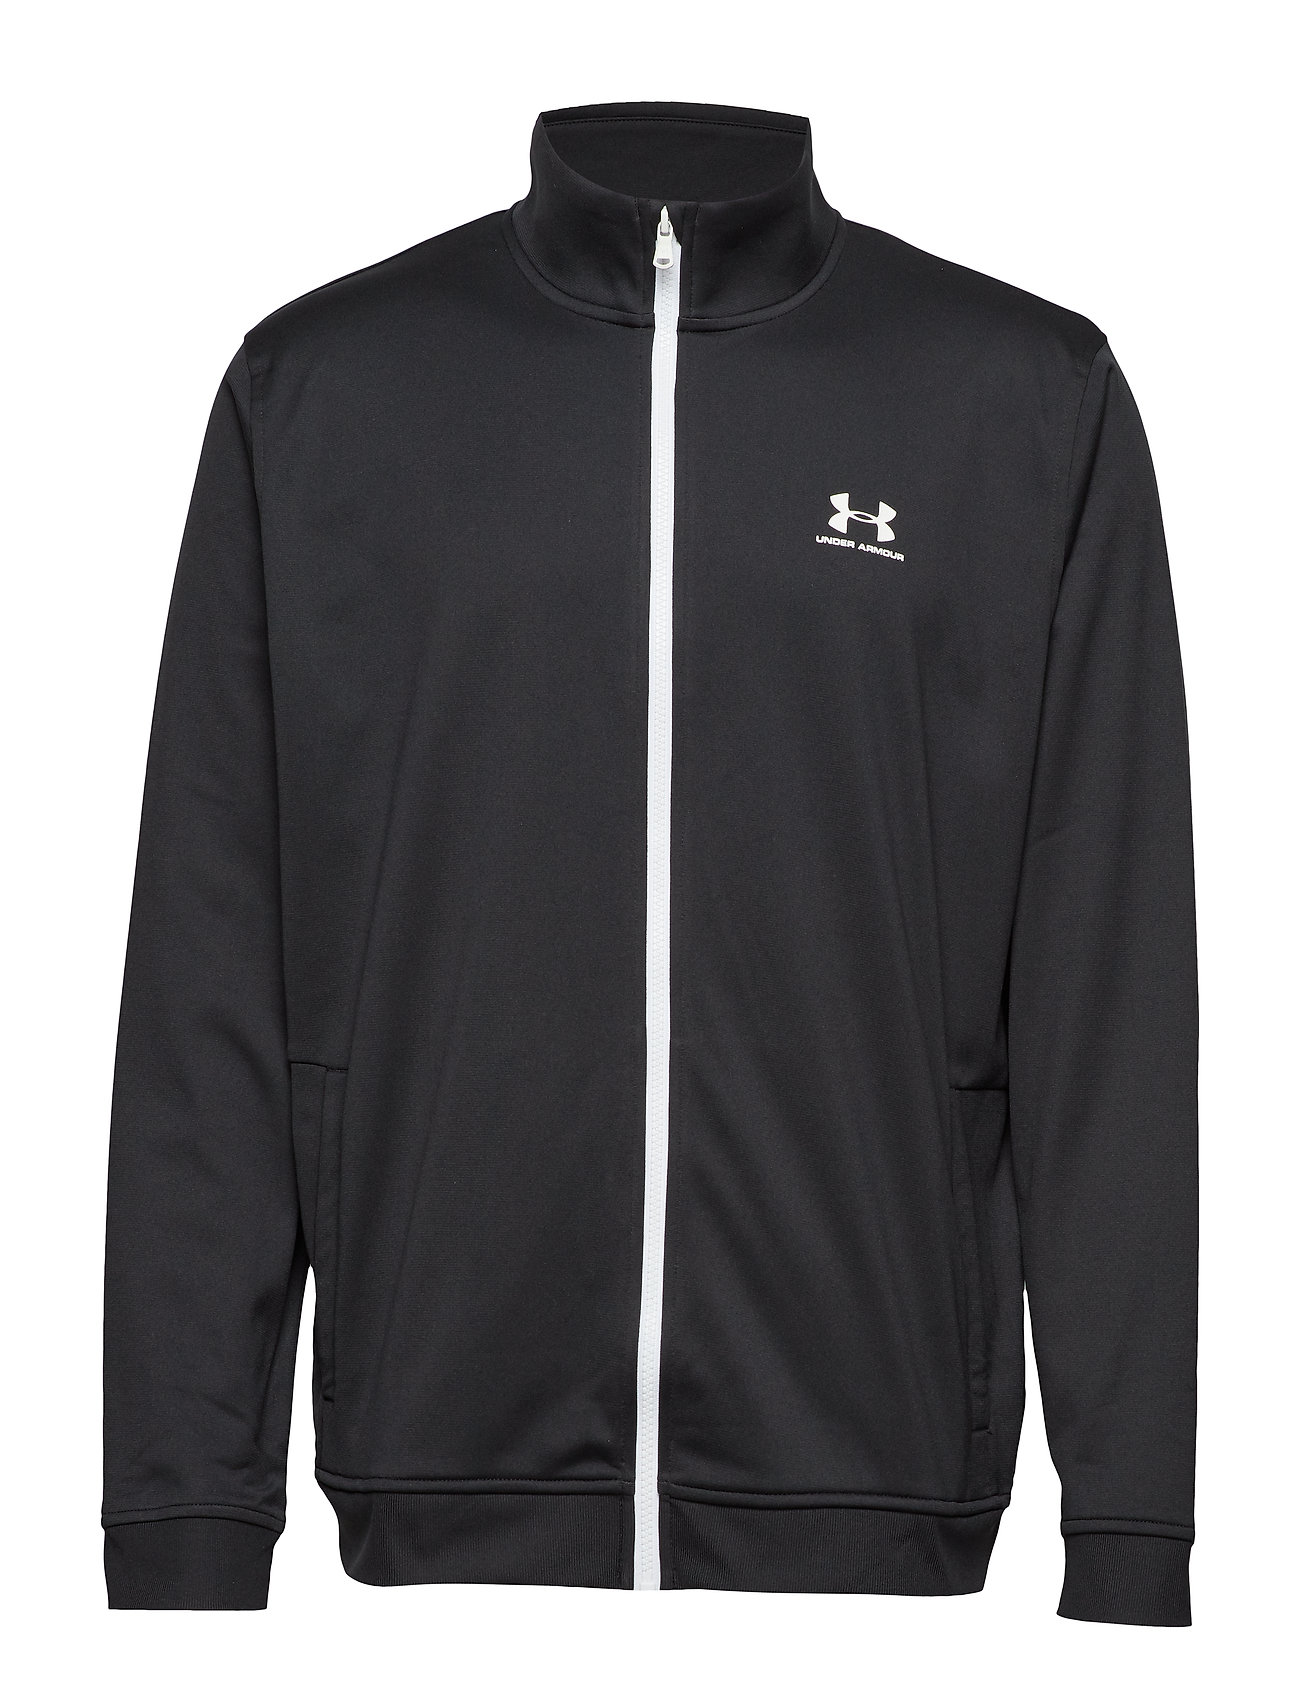 Under Armour SPORTSTYLE TRICOT JACKET - BLACK